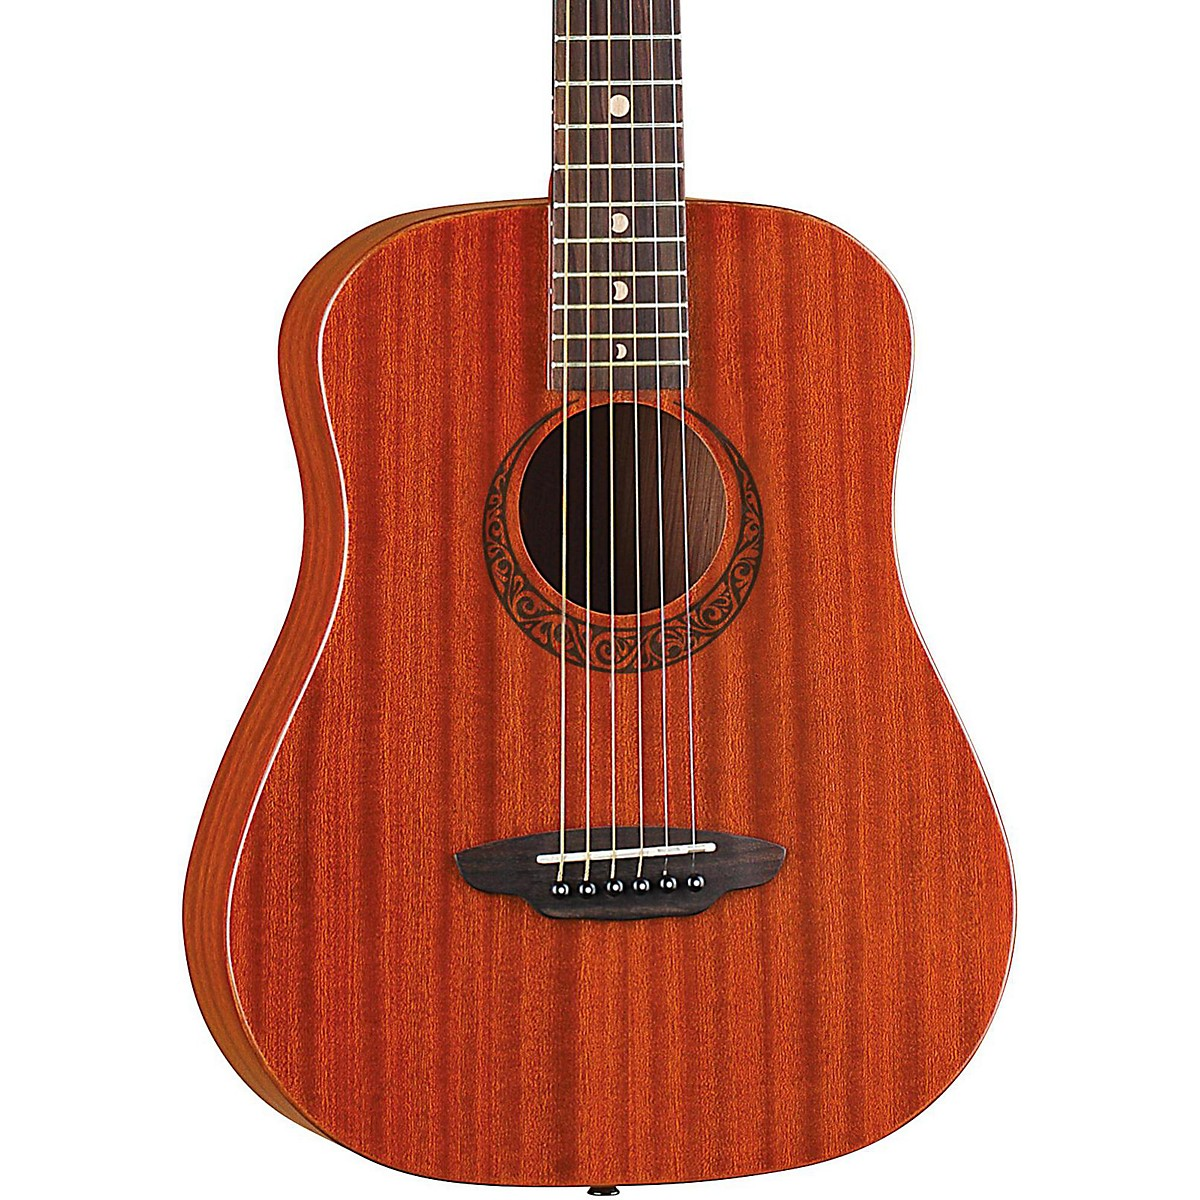 Luna Guitars Limited Safari Muse Mahogany 3/4 Size Acoustic Guitar